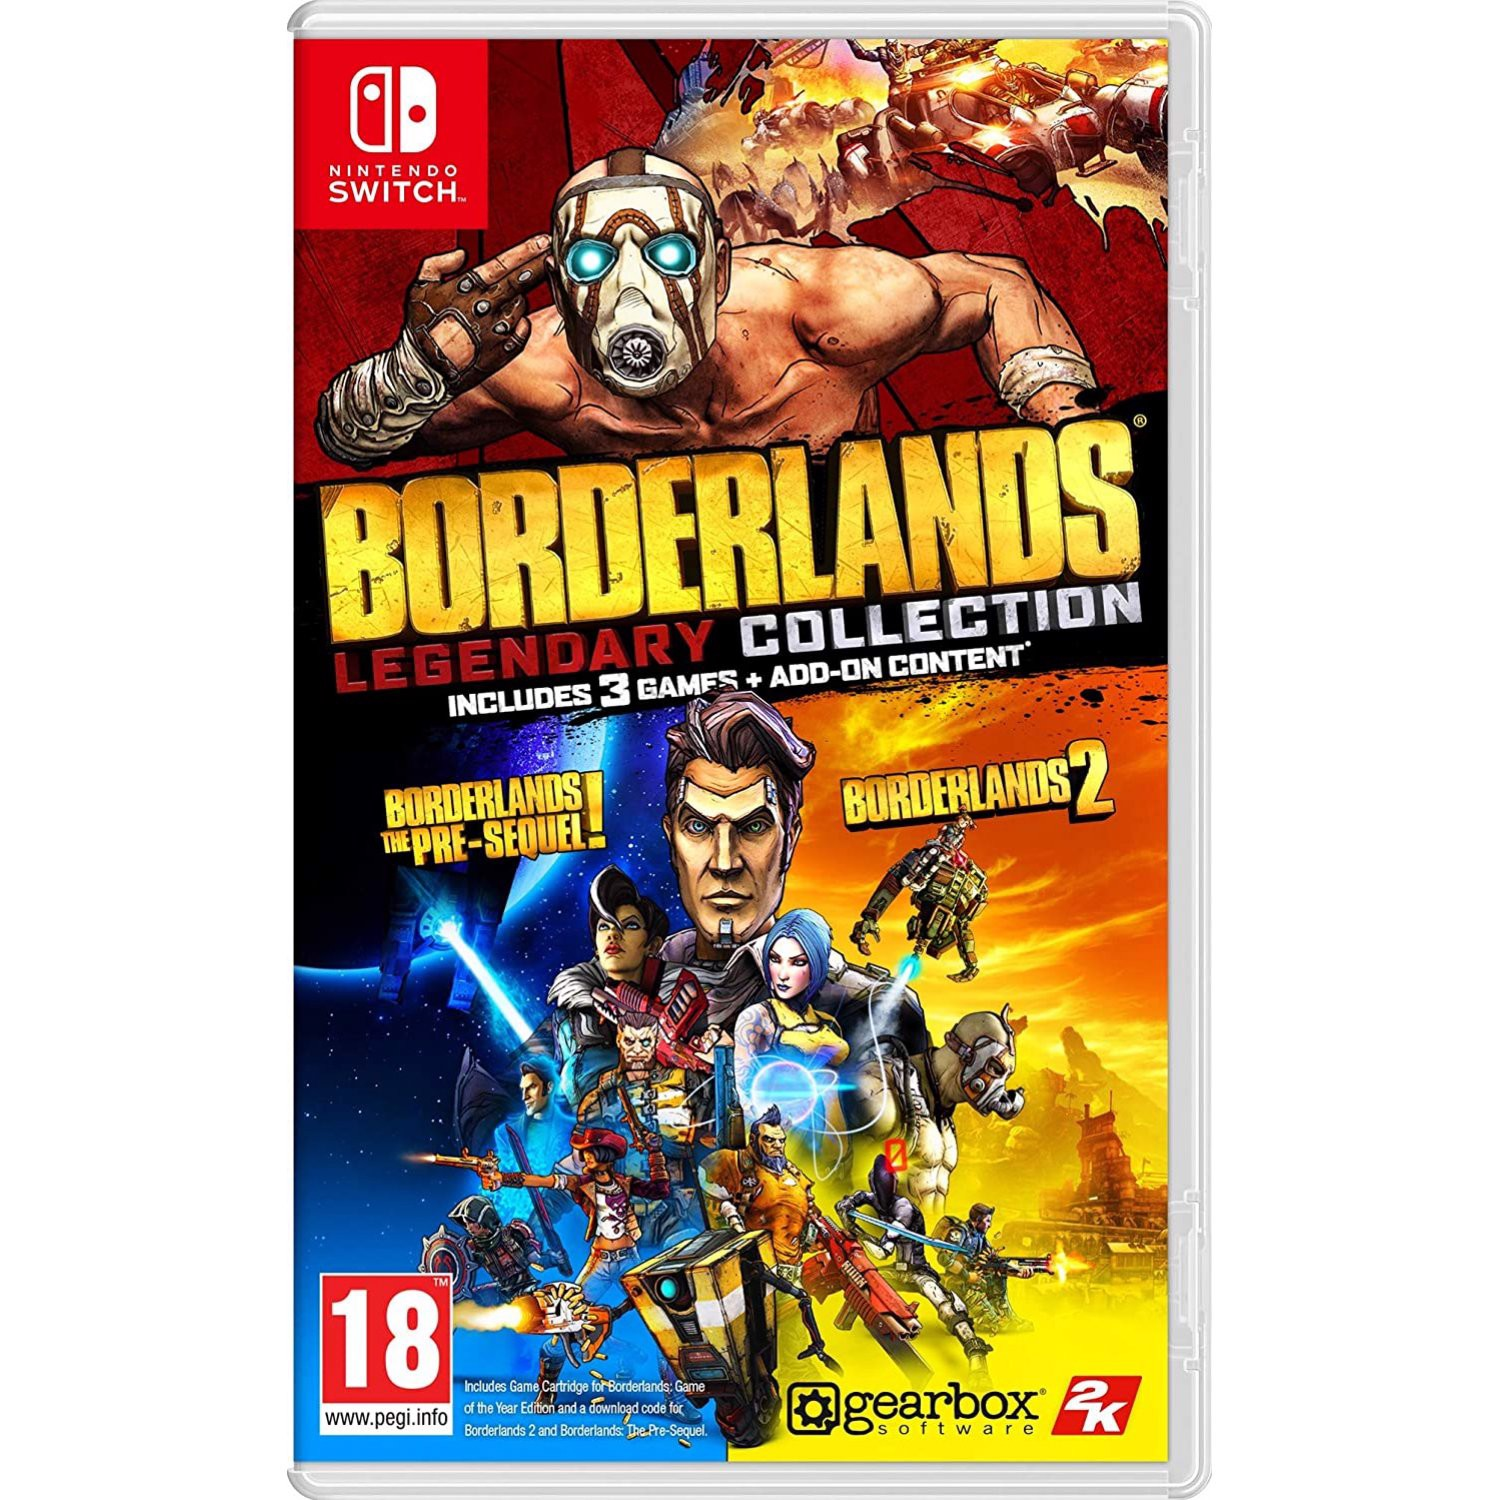 SW185 - Borderlands Legendary Collection cho Nintendo Switch